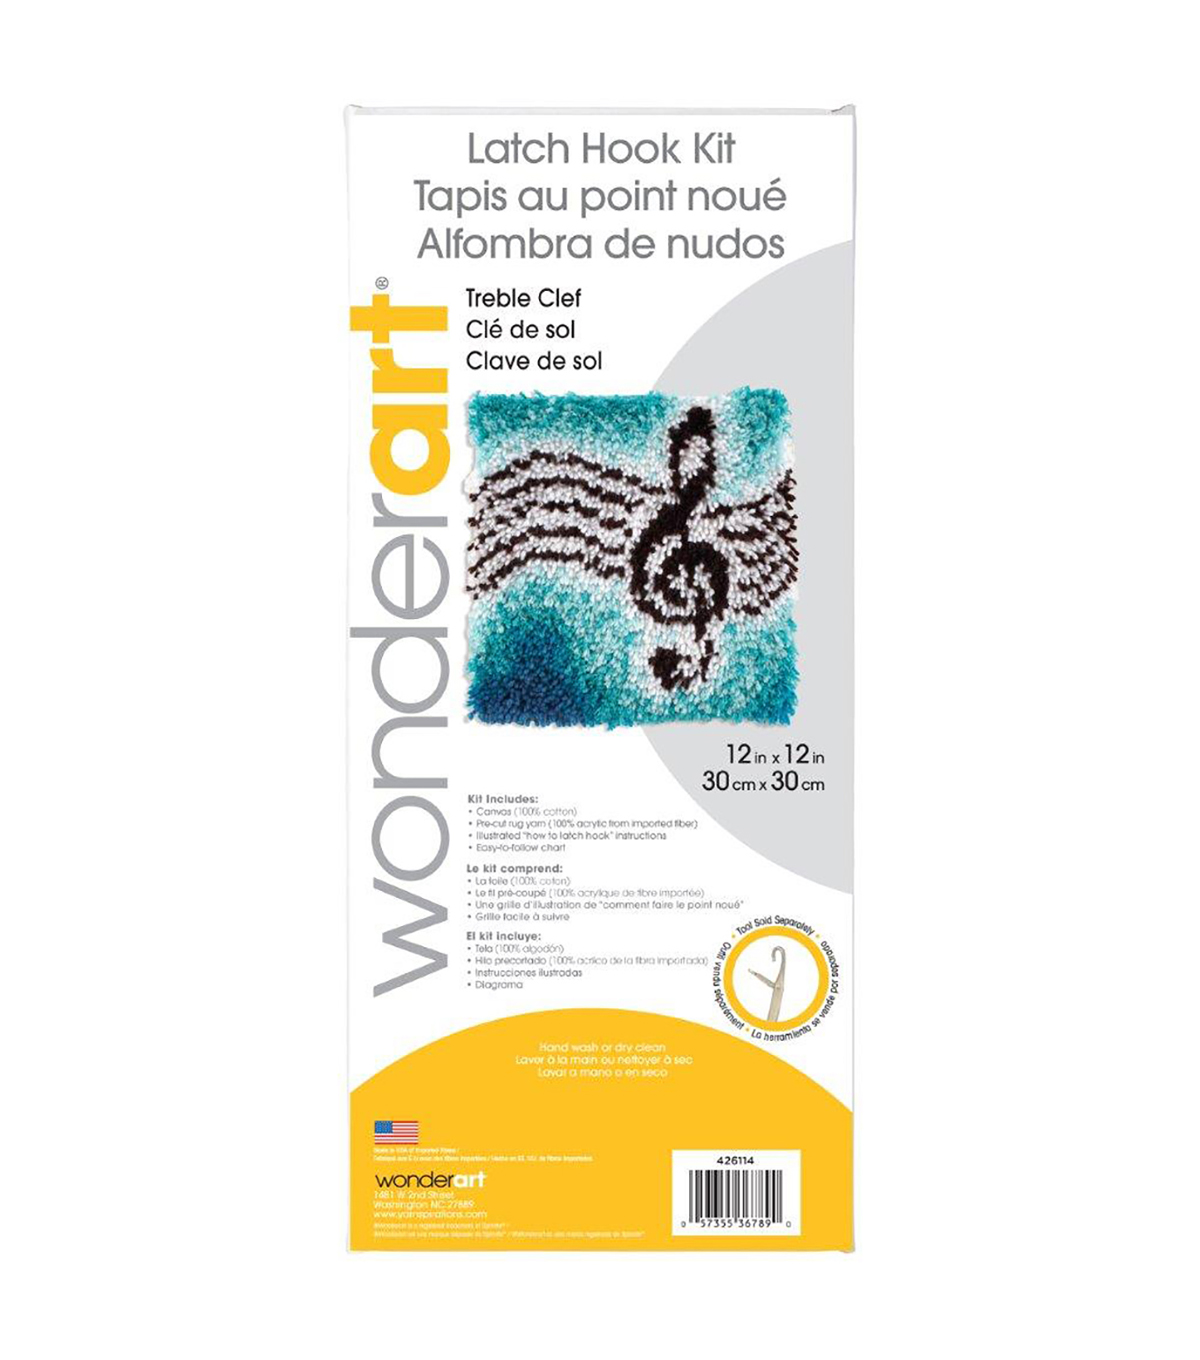 everything latch hook kits